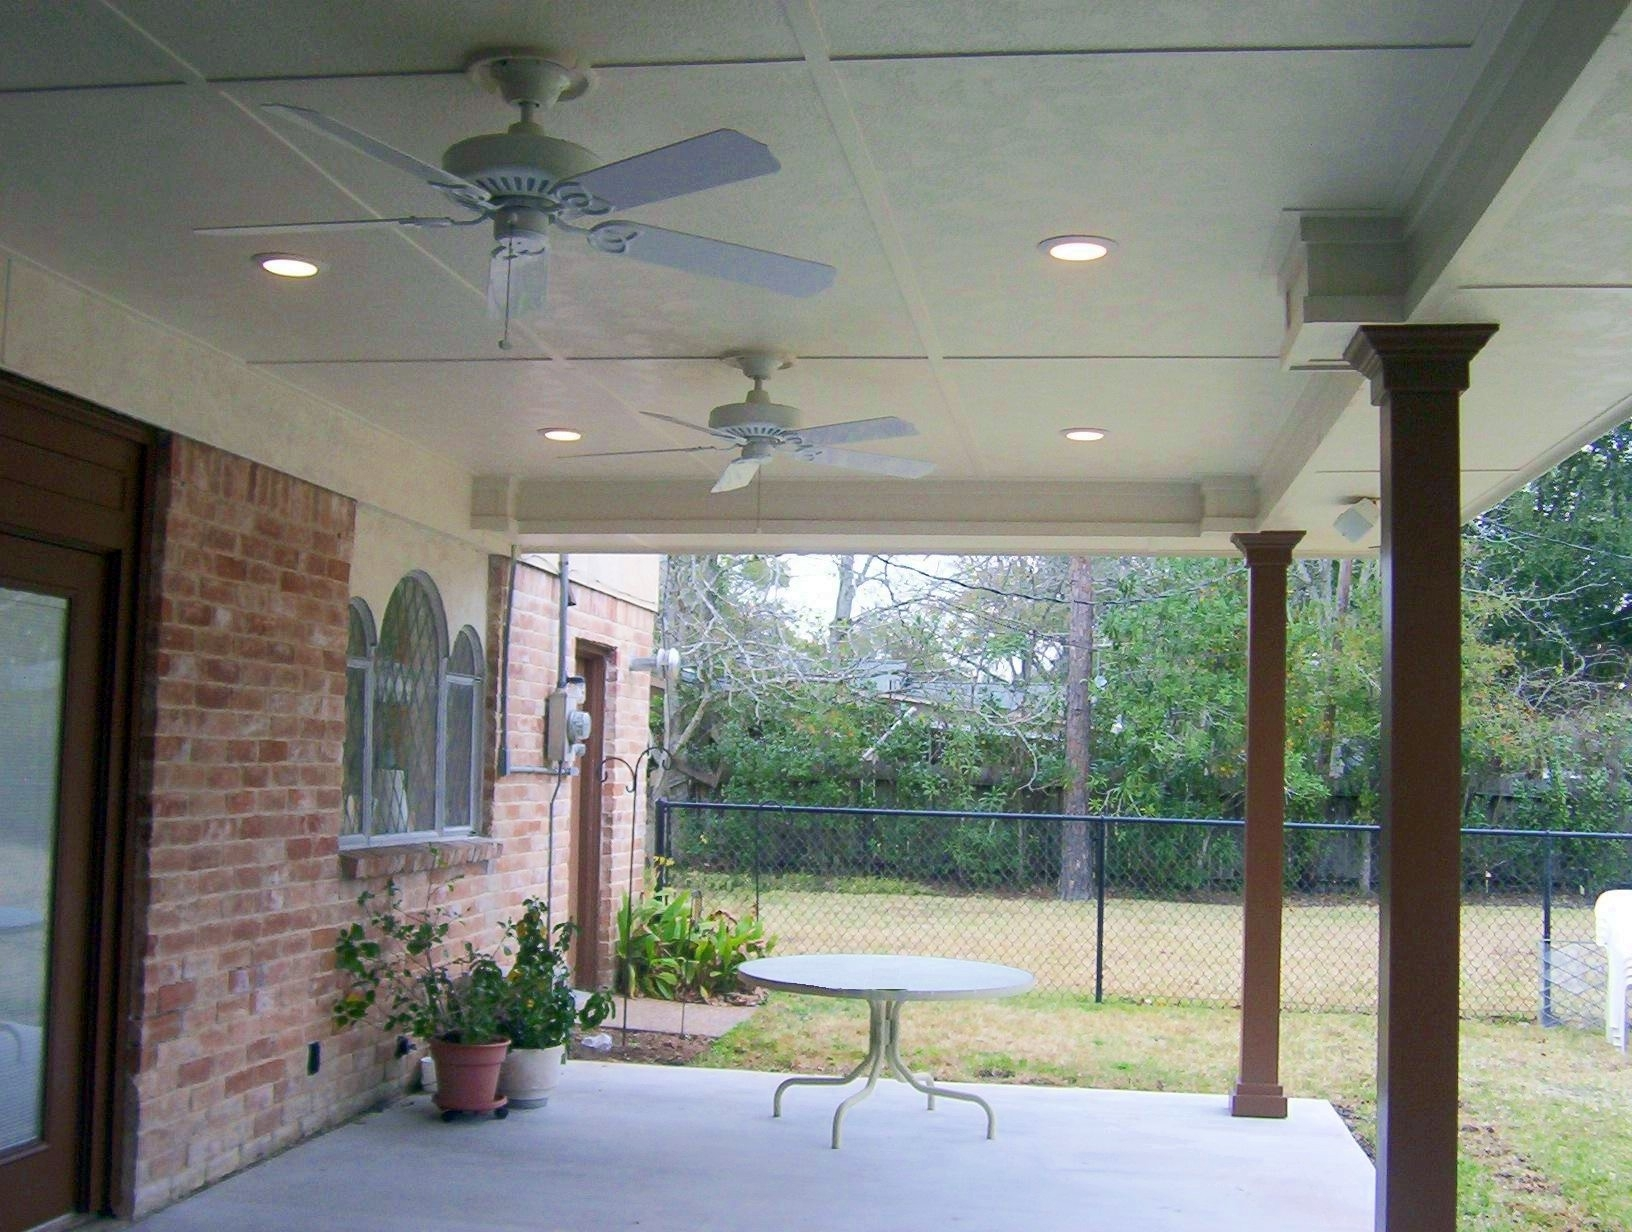 Patio Outdoor Ceiling Fan With Light | Landscaping & Backyards Ideas Regarding Outdoor Ceiling Lights For Patio (#14 of 15)